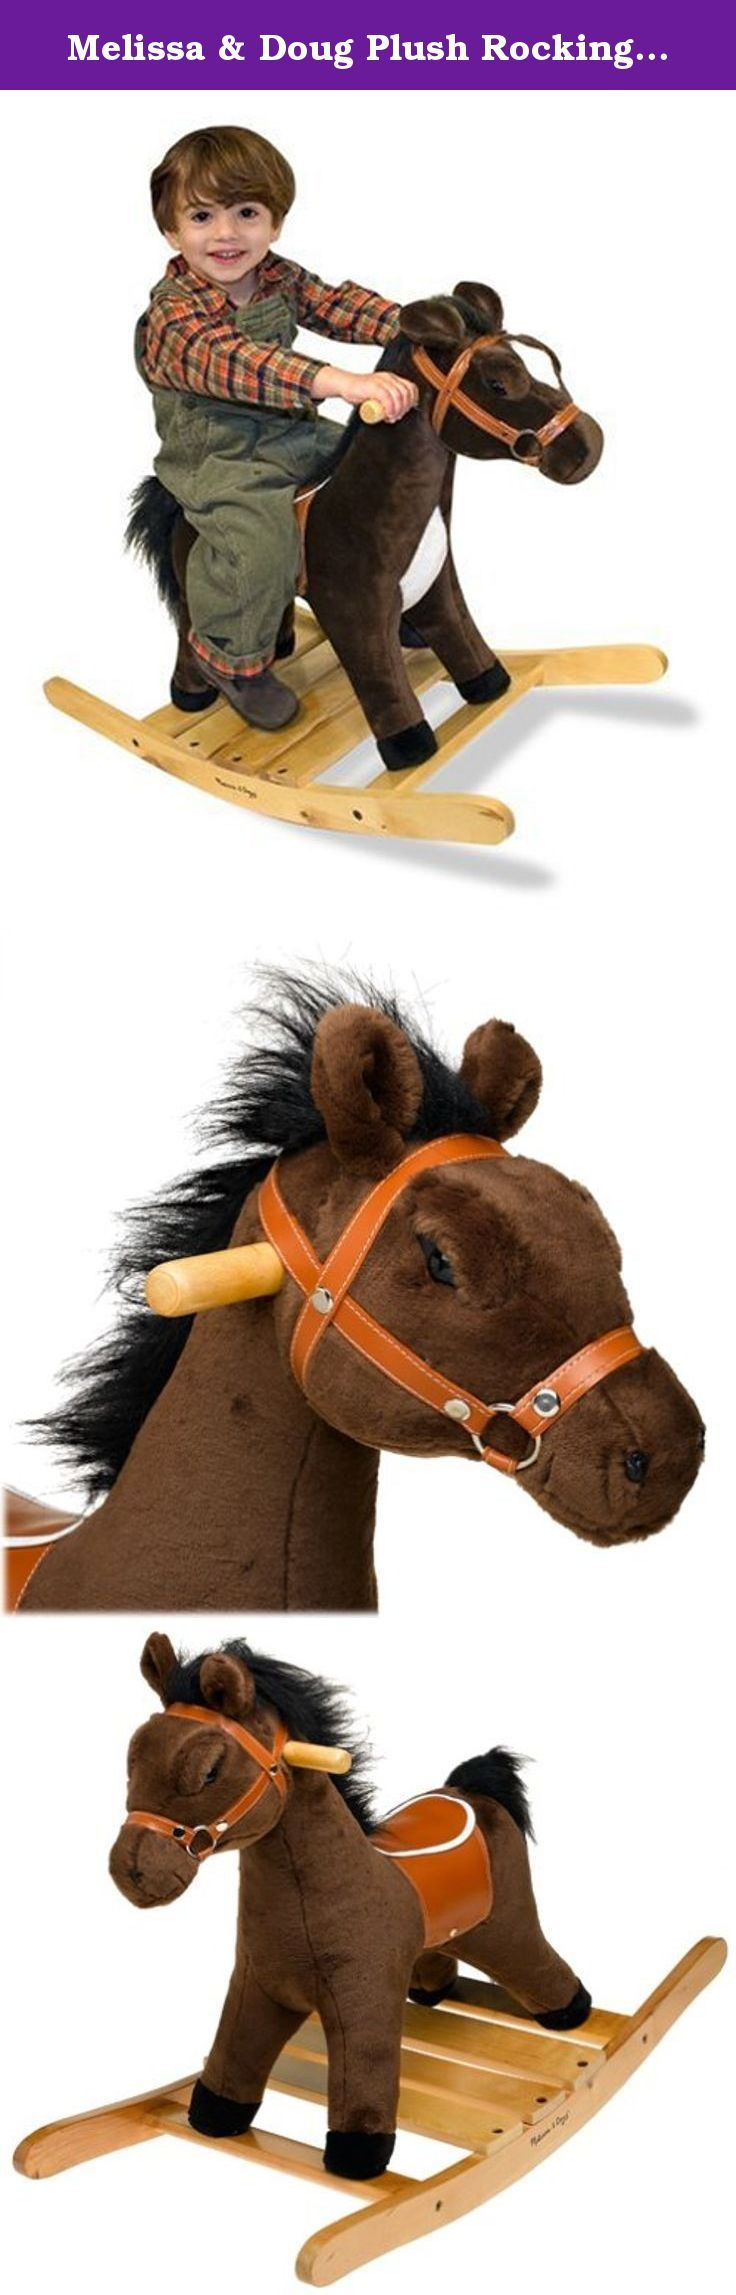 Melissa & Doug Plush Rocking Horse - Wooden Base and Handles Plus Saddle and Harness. Whoa! Here is a sturdy, lovable rocking horse featuring ultra-soft fur and a realistic saddle and bridle. Ready to ride, it makes galloping sounds when its ear is pressed! Easily mounted on a solid wood, rocking base that accommodates up to 150 pounds, its excellent quality construction and attention to detail, includes easy grasp wooden handles. This fabulous riding toy is destined to be a family…